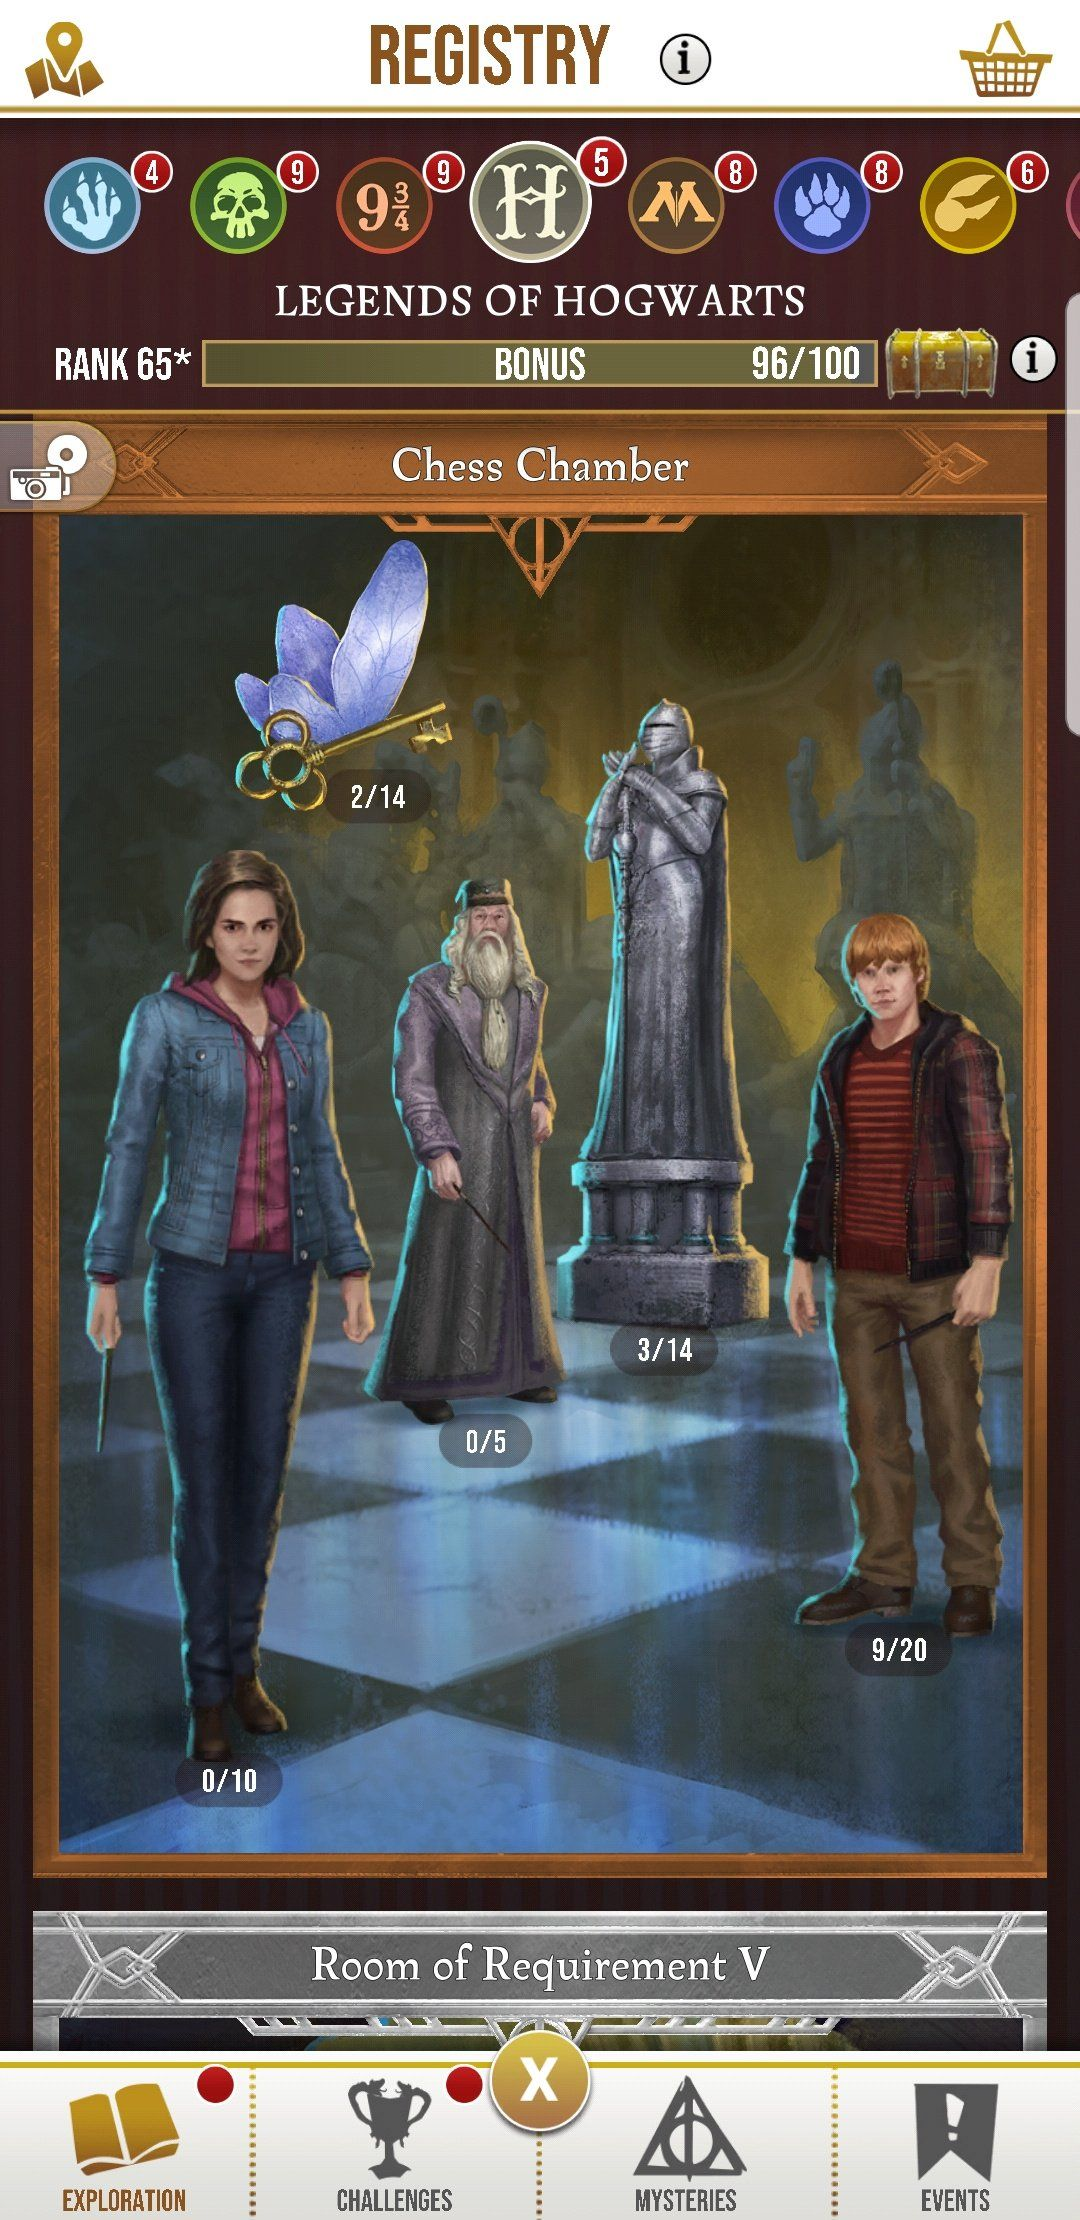 Green Placed Icon Is Missing For Players Who Received Fragments Back From May 7th Harry Potter Wizards Unite Community Forum Niantic Harry Potter Icon